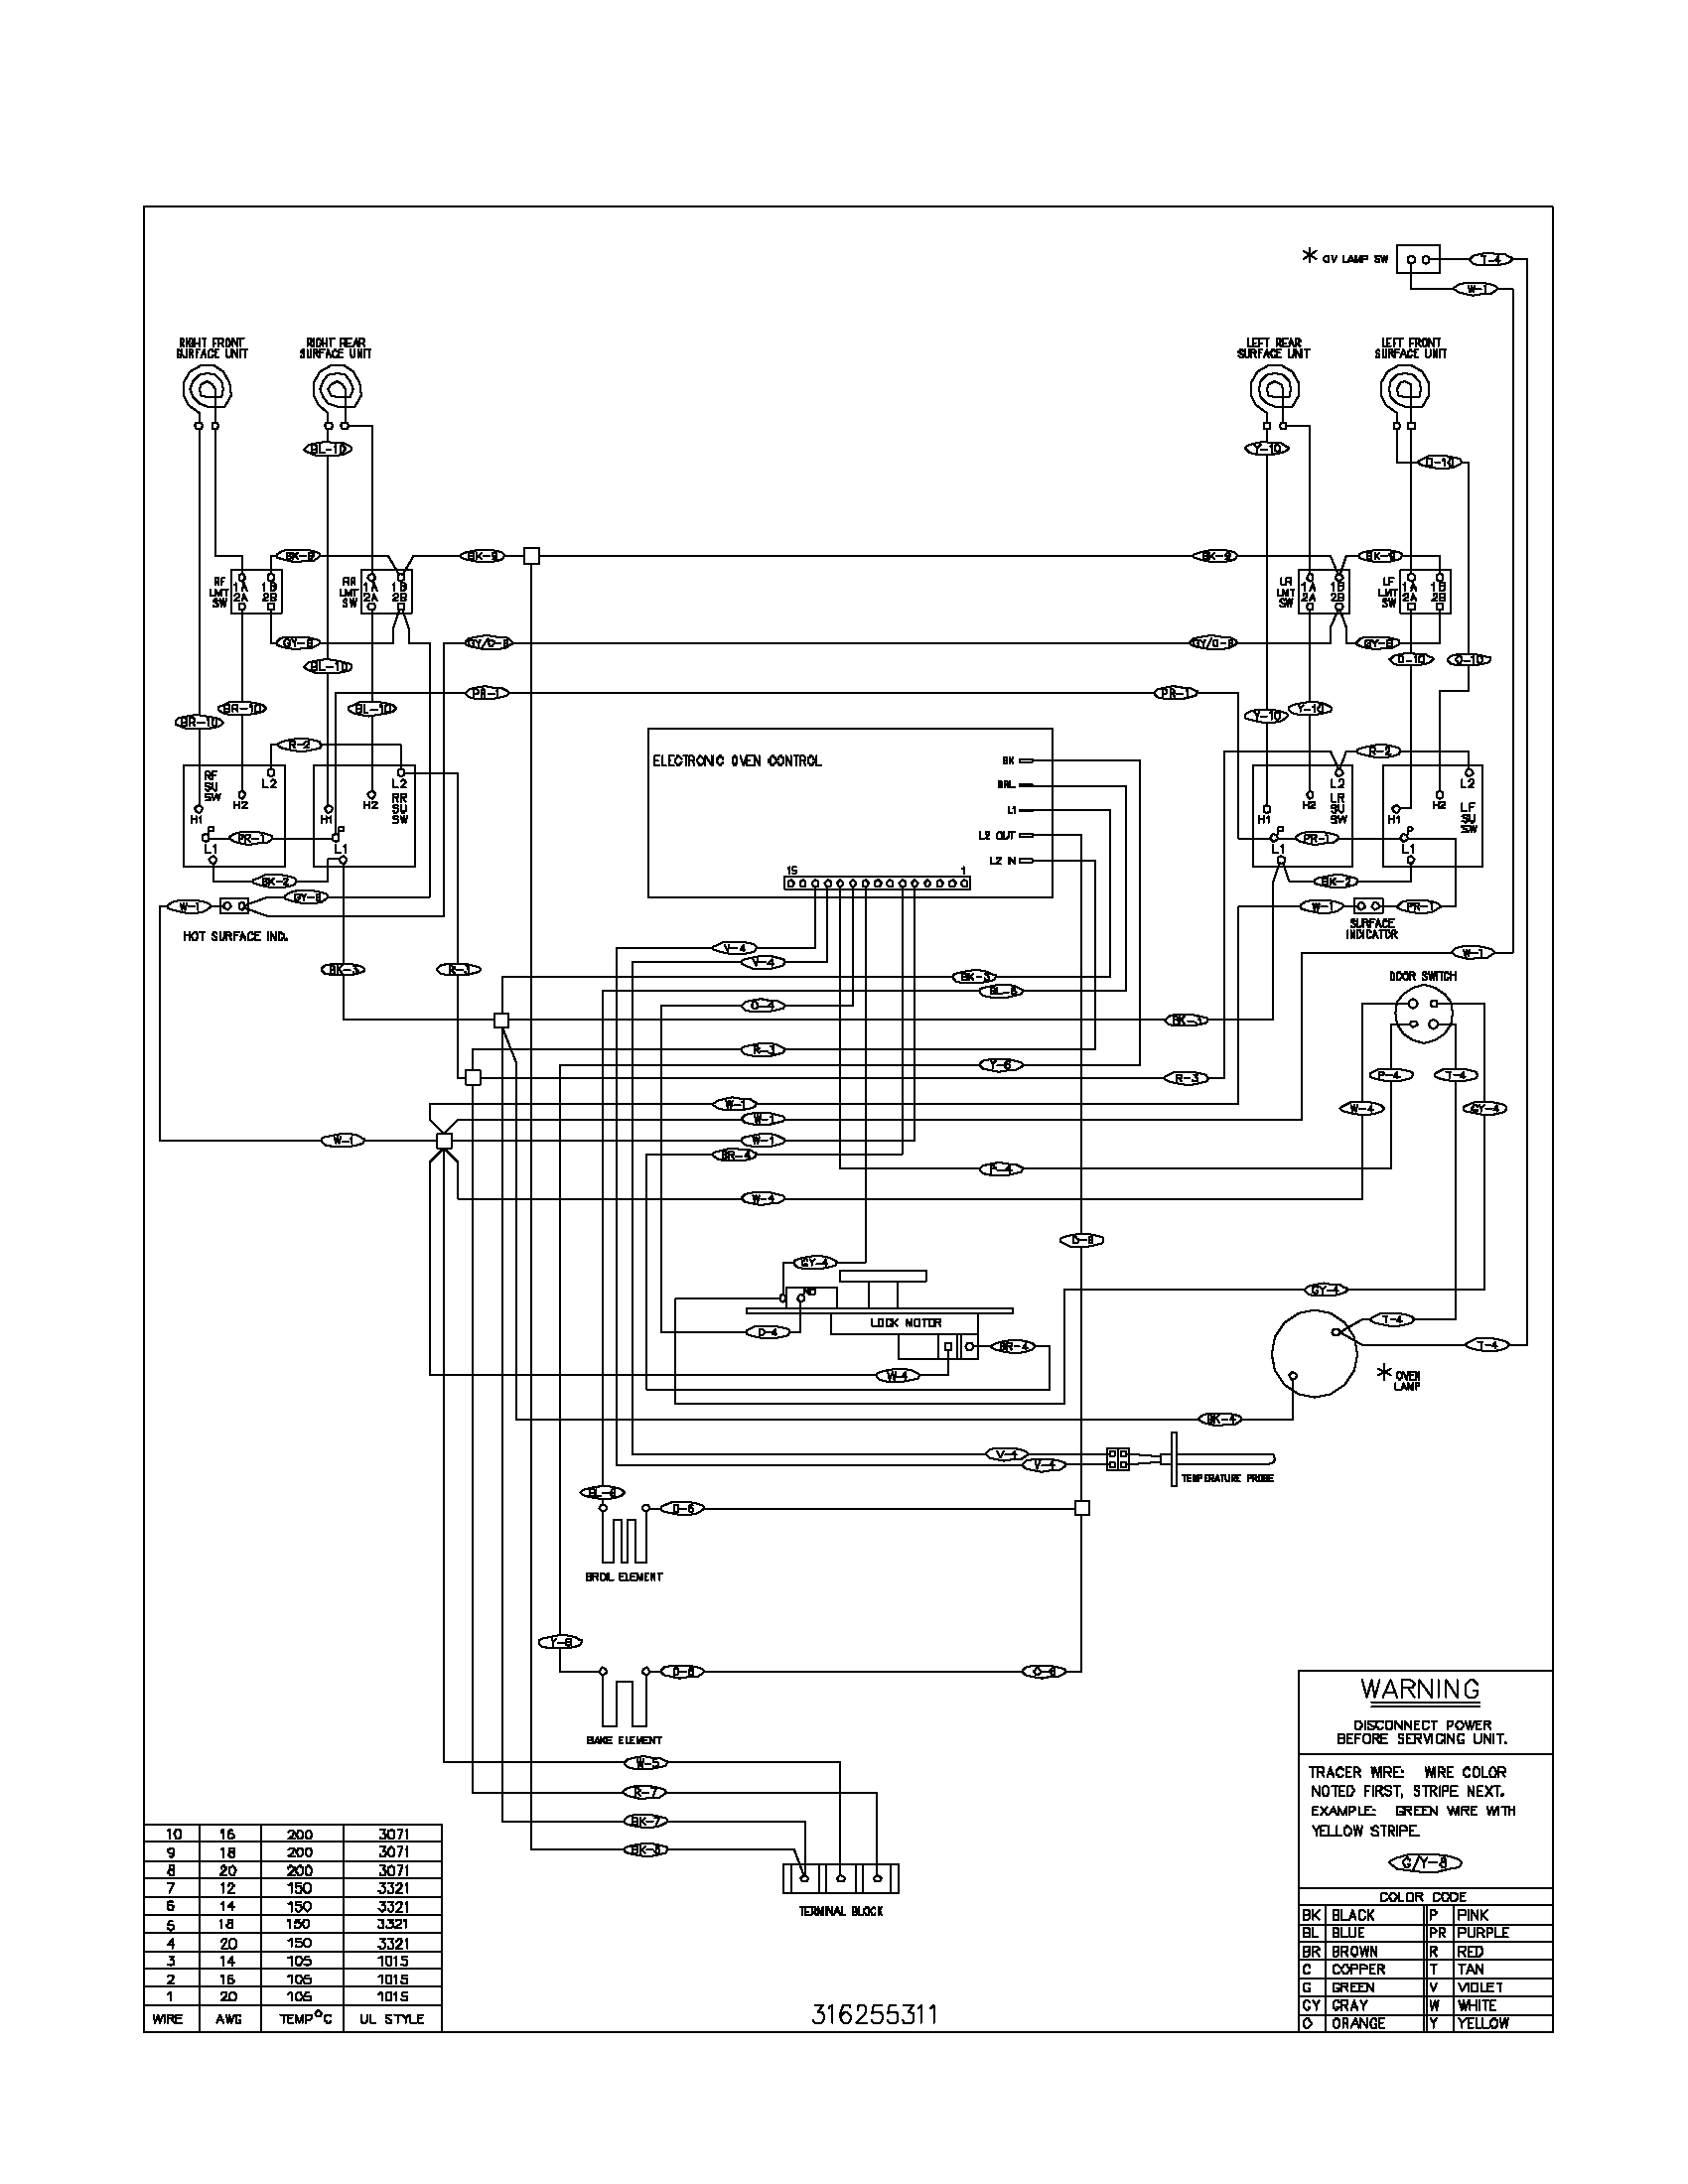 Yfm660 Wire Diagram Photo Album - Wiring diagram schematic on harley dyna frame diagram, harley ignition wiring, harley starter wiring diagram, harley sportster wiring diagram, harley electrical system, harley ignition switch replacement, harley tbw wiring diagram, harley wiring harness diagram, harley heated grips wiring diagram, harley turn signal wiring diagram, harley wiring schematics, harley wiring diagram simplified, harley wiring diagram wires, harley handlebar wiring diagram, harley speedometer wiring diagram, harley coil wiring, harley softail wiring diagram, harley wiring diagrams pdf, harley chopper wiring diagram, harley wiring diagrams online,